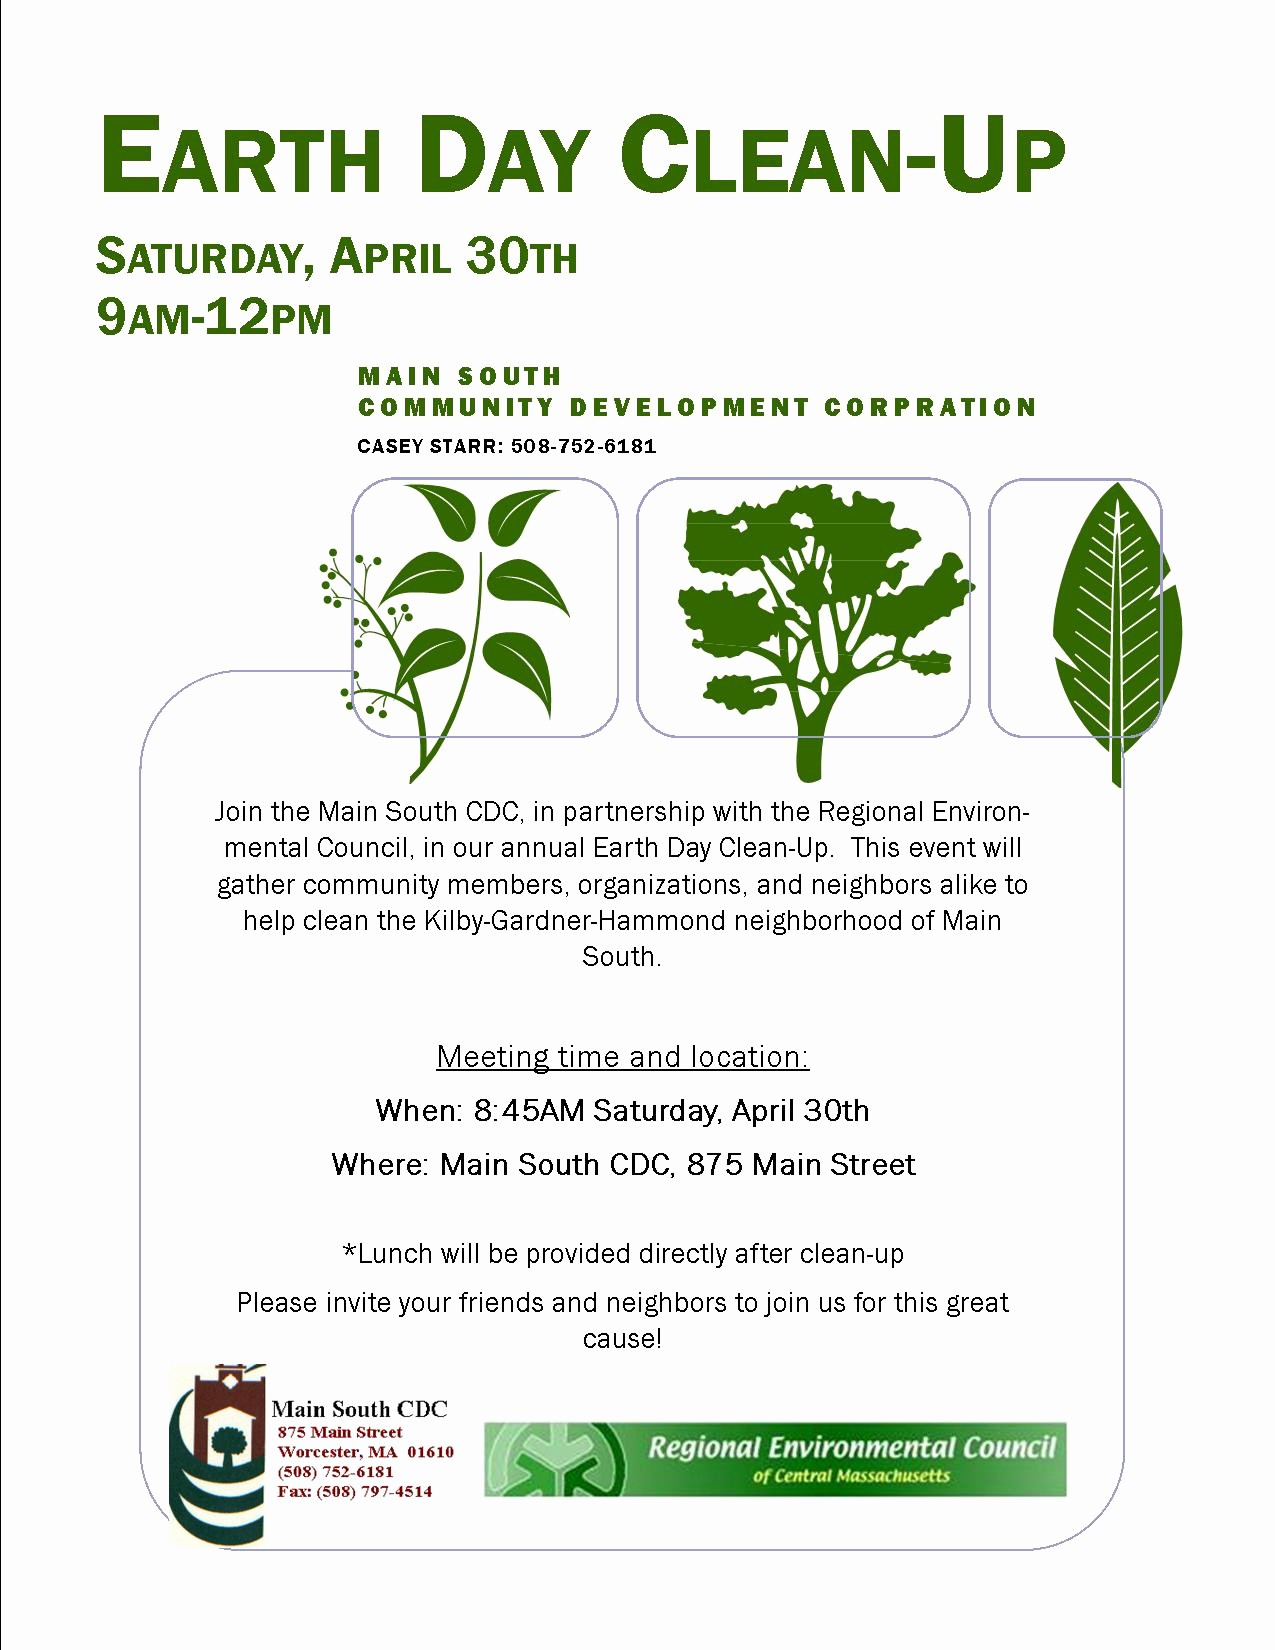 Office Clean Up Day Flyer Beautiful Main south Cdc